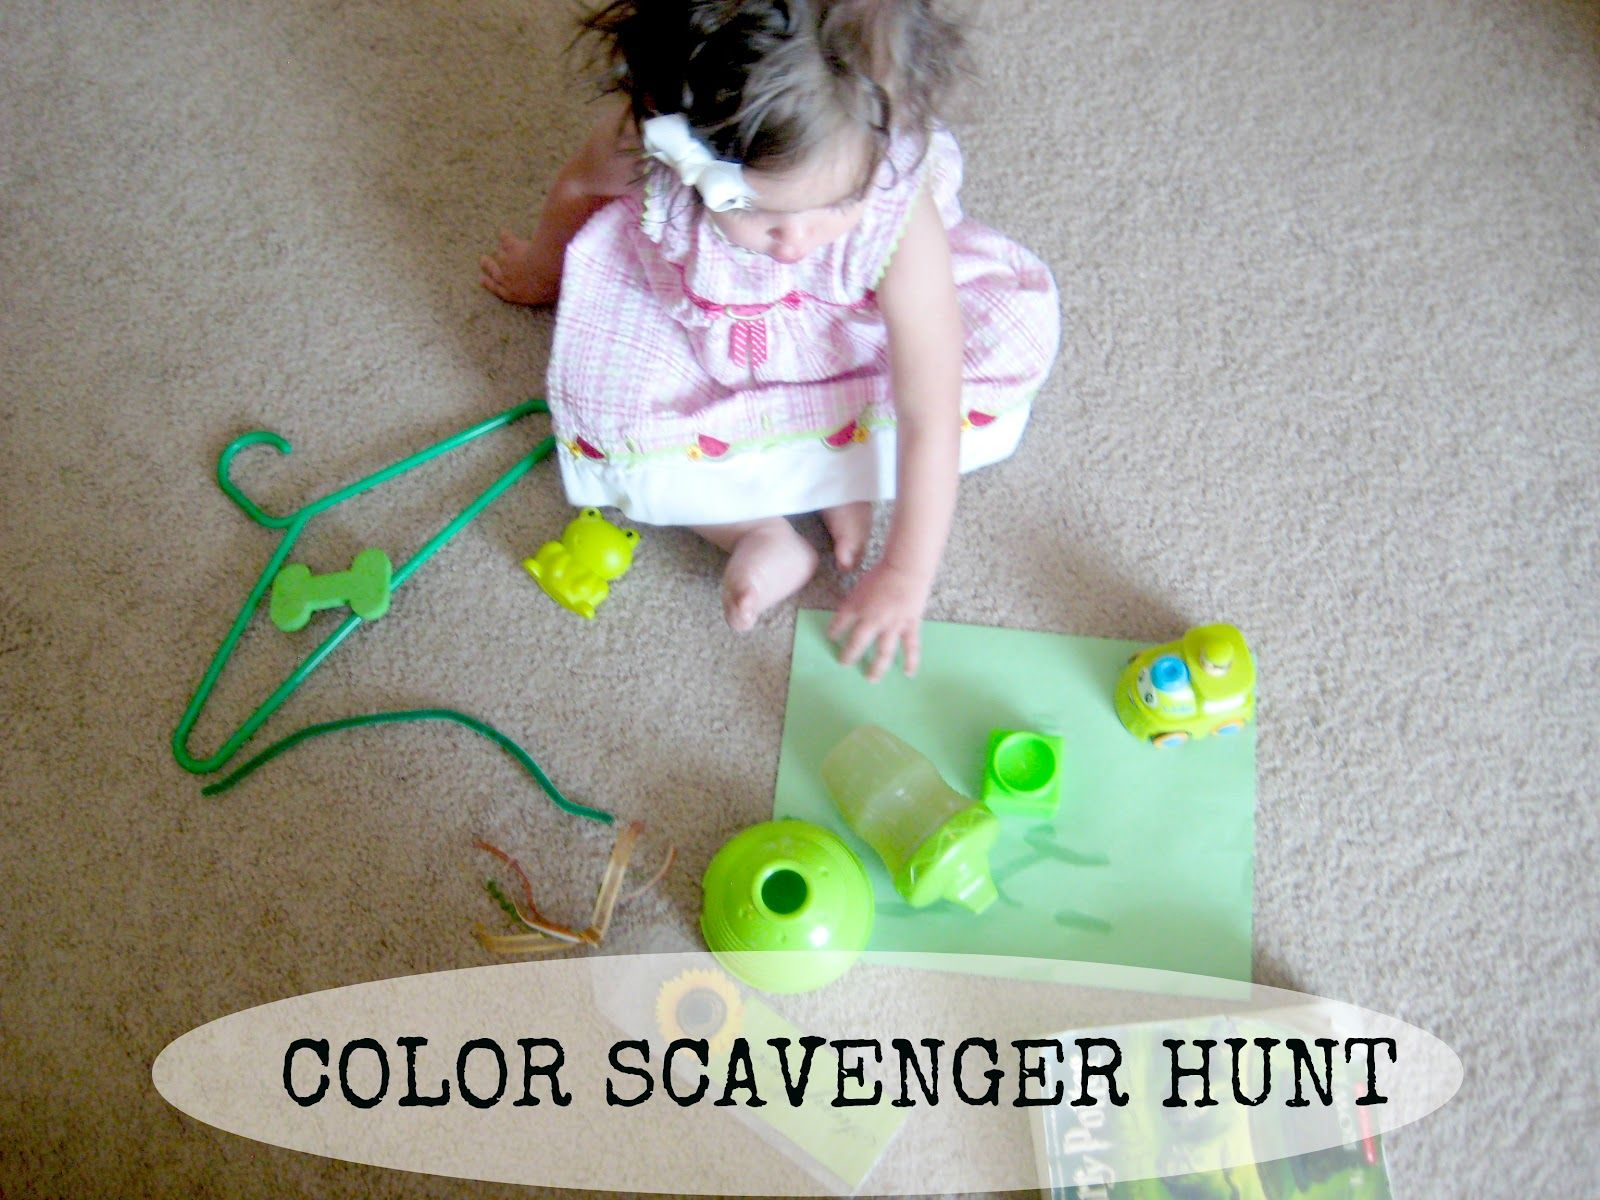 Color scavenger hunt | All Things Play! | Pinterest | Activities ...